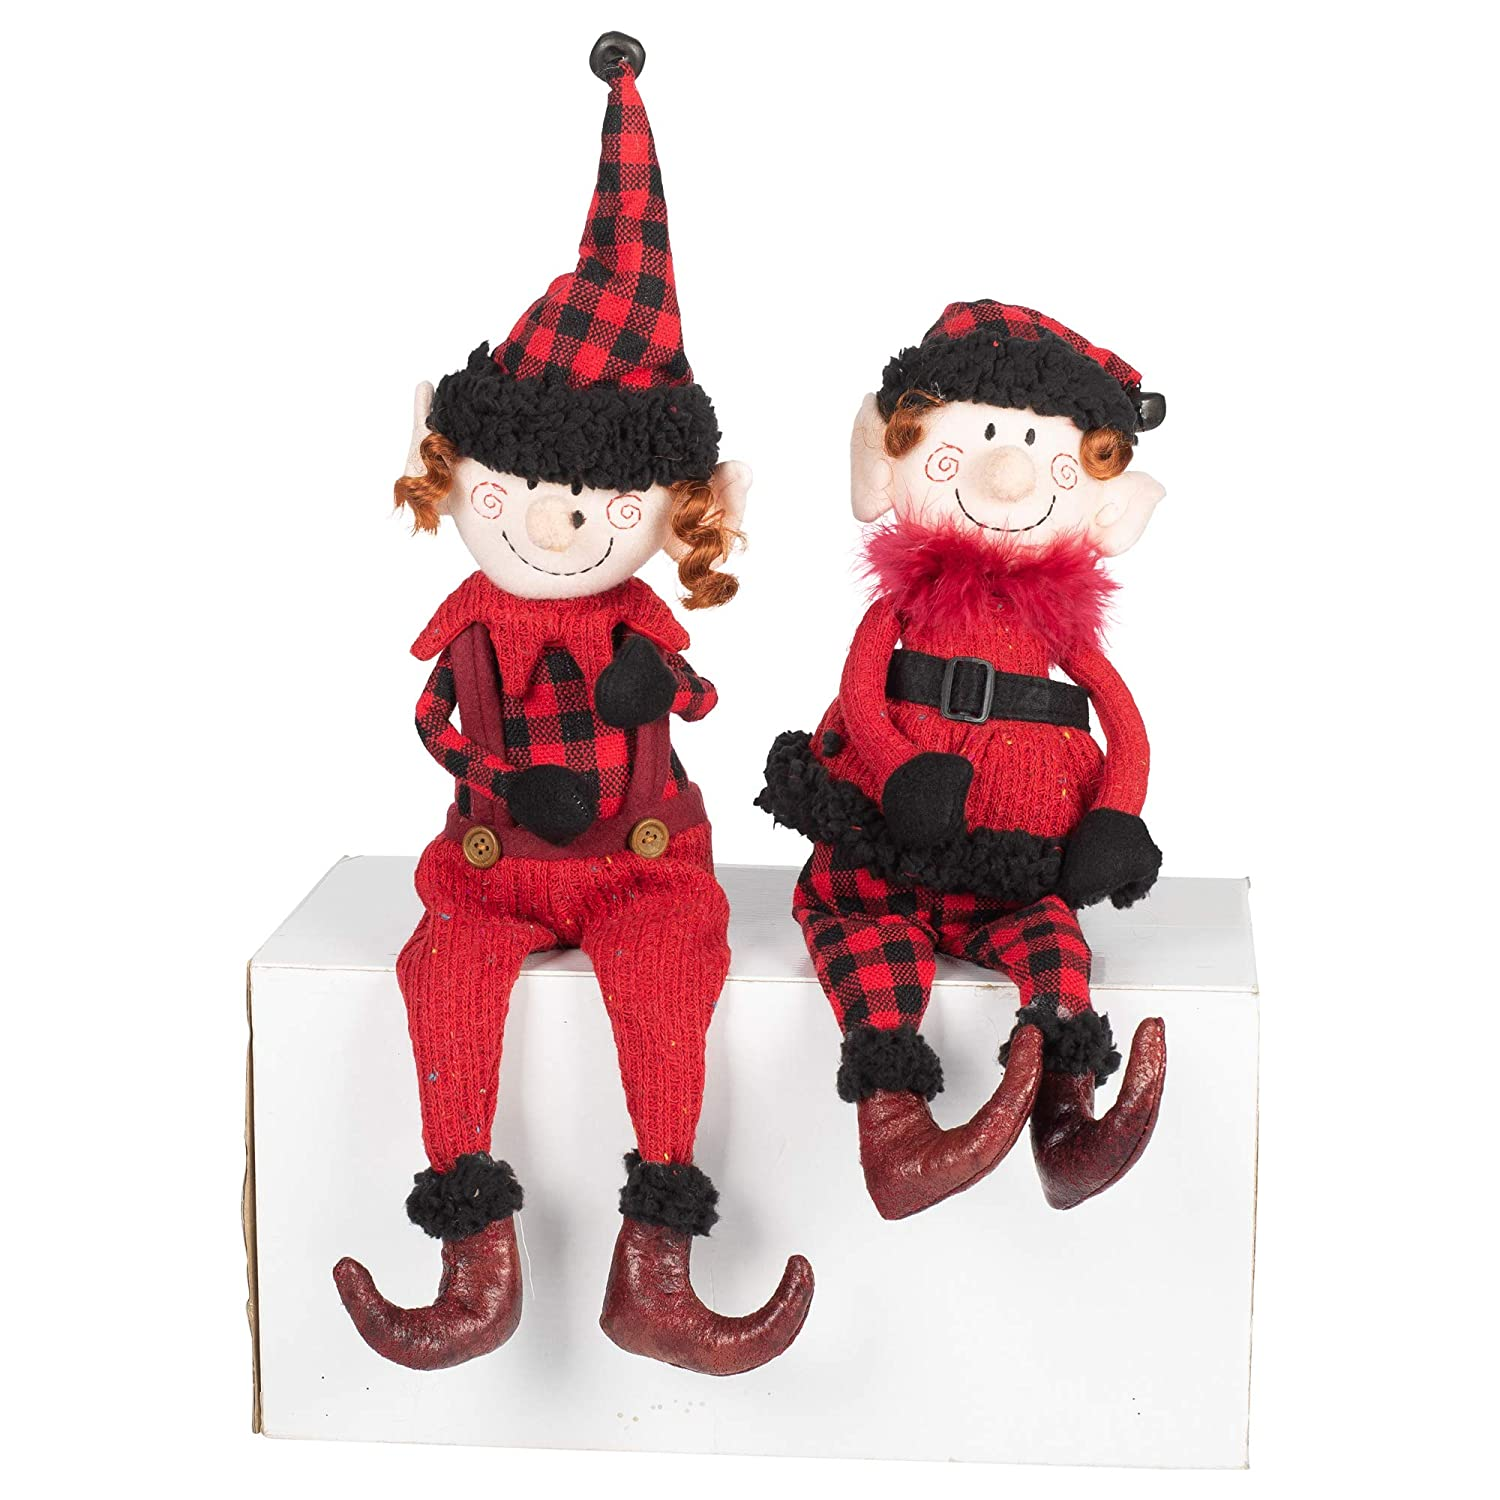 Midwest-CBK Woodland Elves Sitter Red Plaid 17 x 6 Fabric Christmas Figurines Set of 2